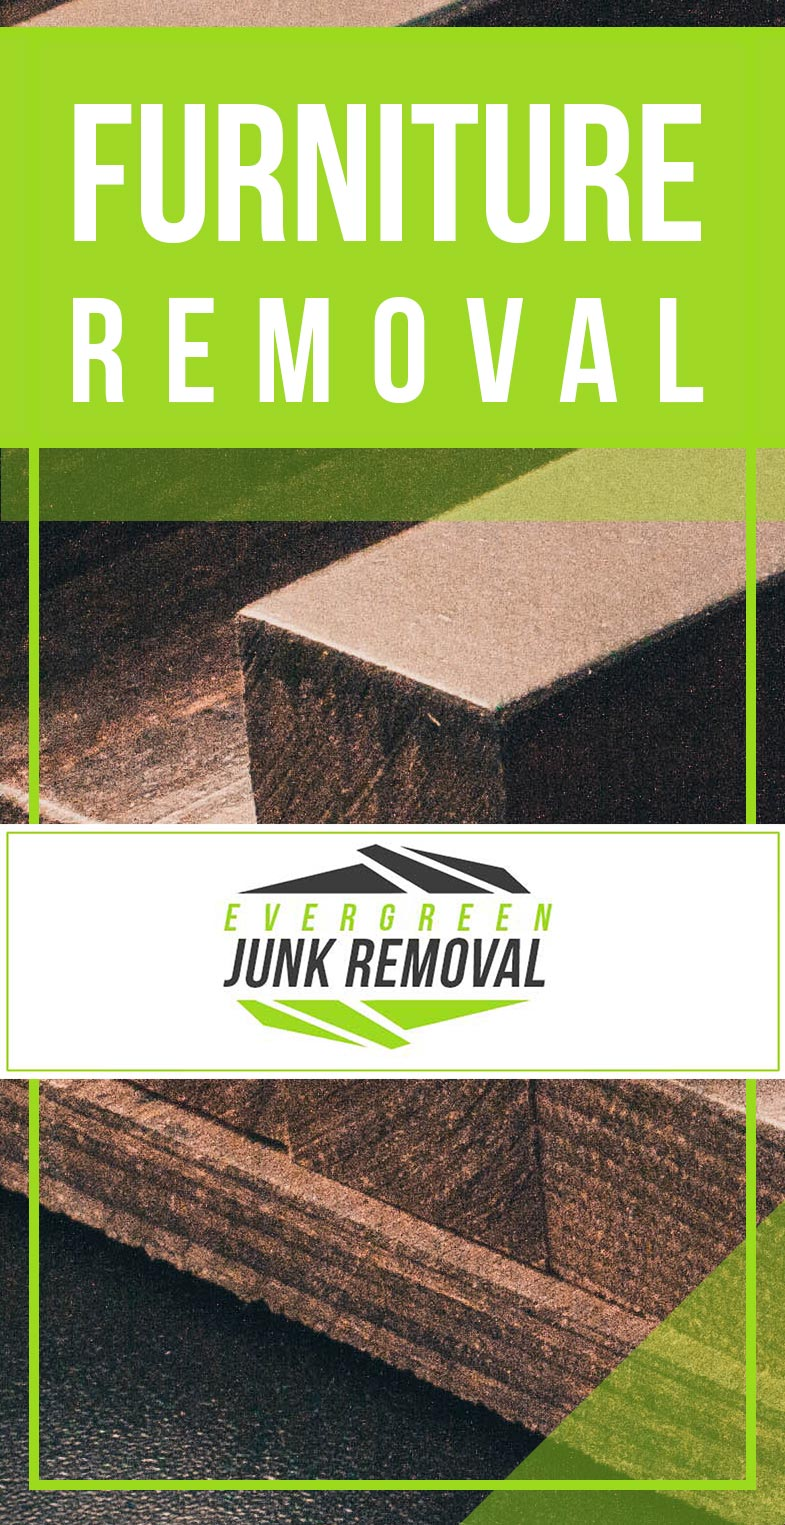 Junk Removal Wilton Manors Furniture Removal